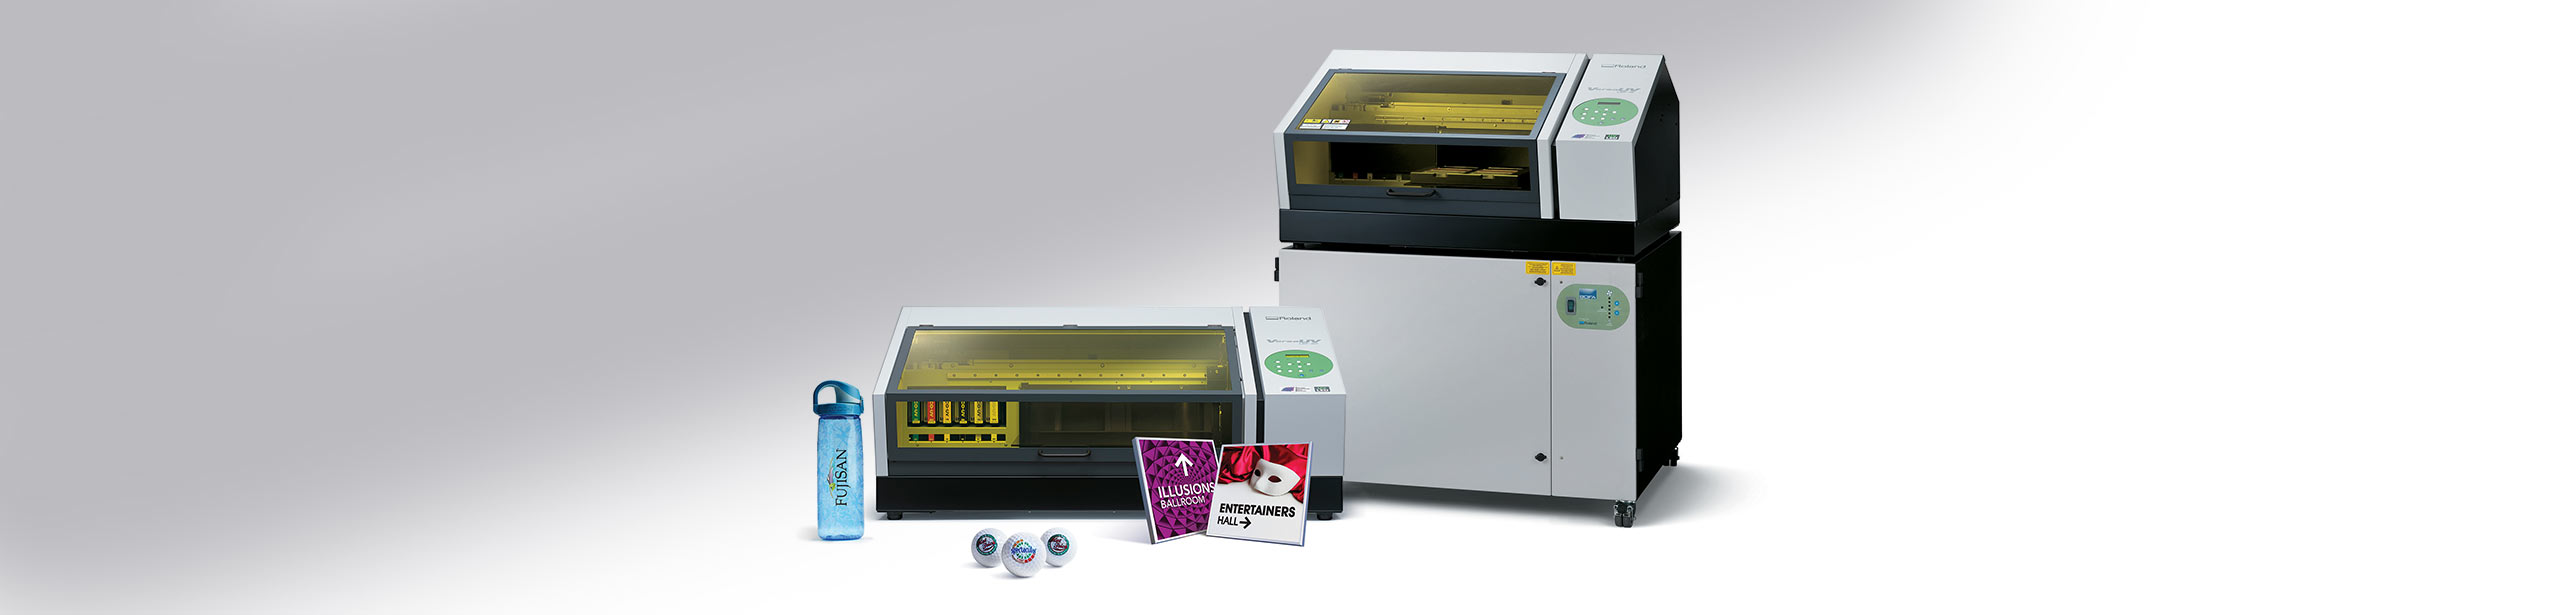 UV benchtop printer by Roland DG